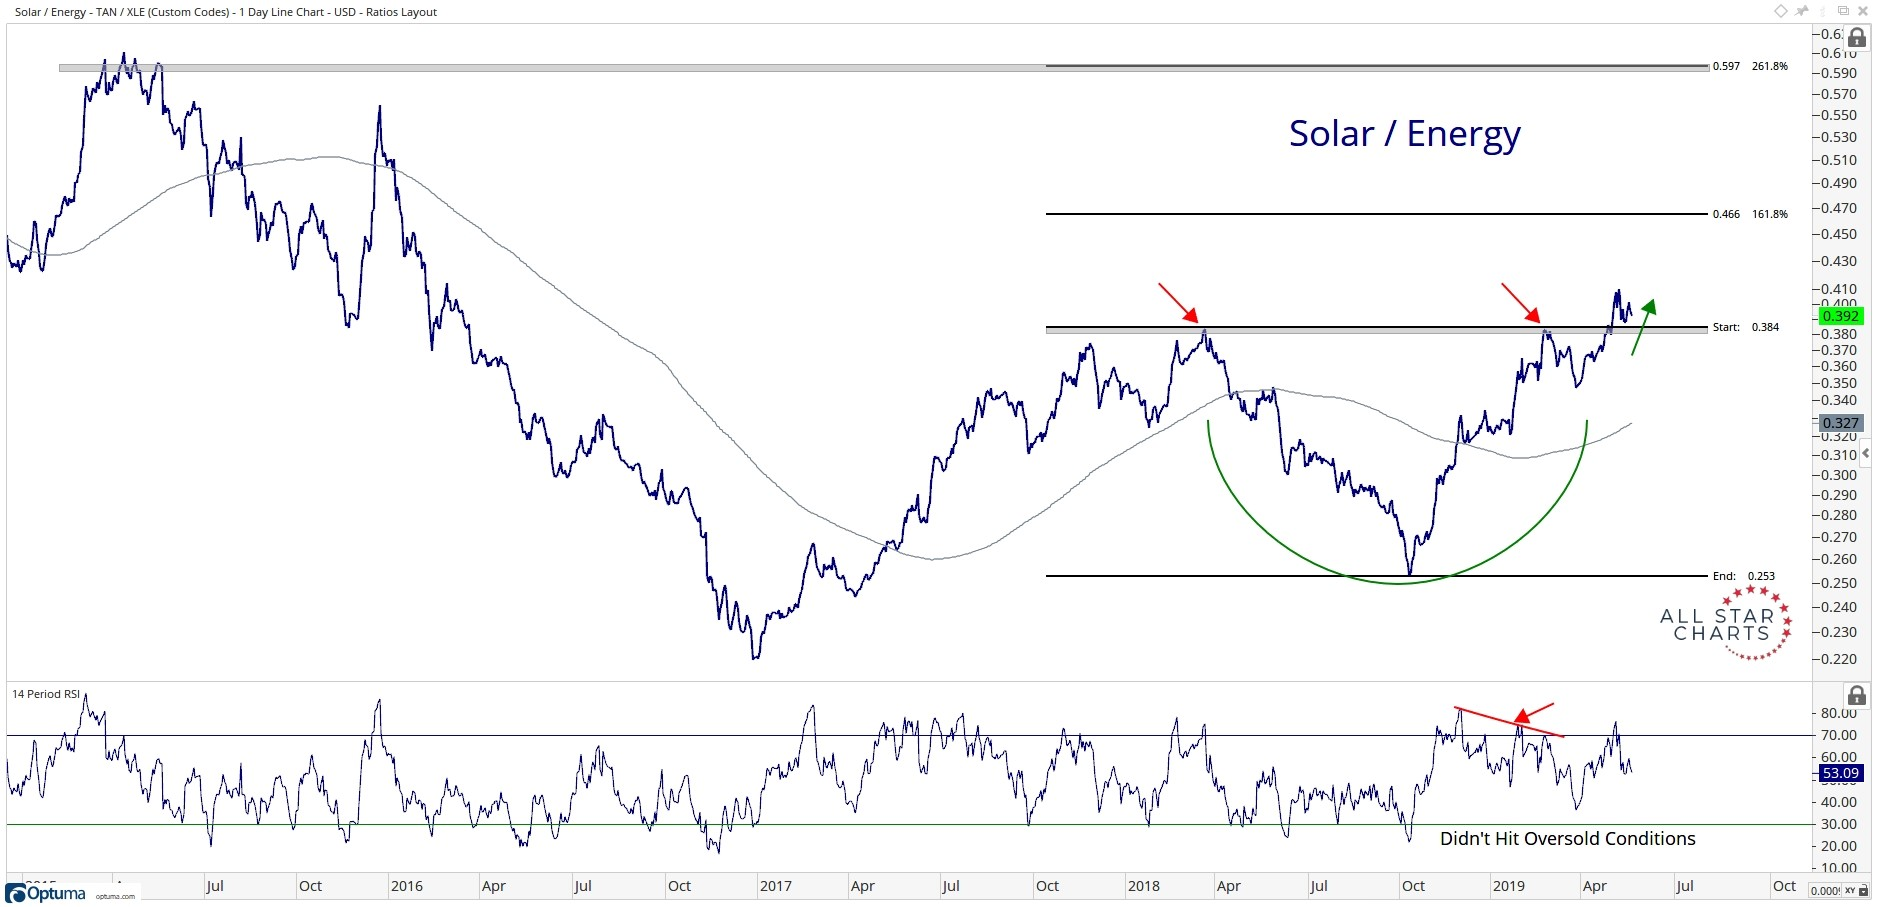 Intermediate-term history of the performance of the Invesco Solar ETF (NYSEArca: TAN) relative to the Energy Select Sector SPDR Fund (NYSEArca: XLE).